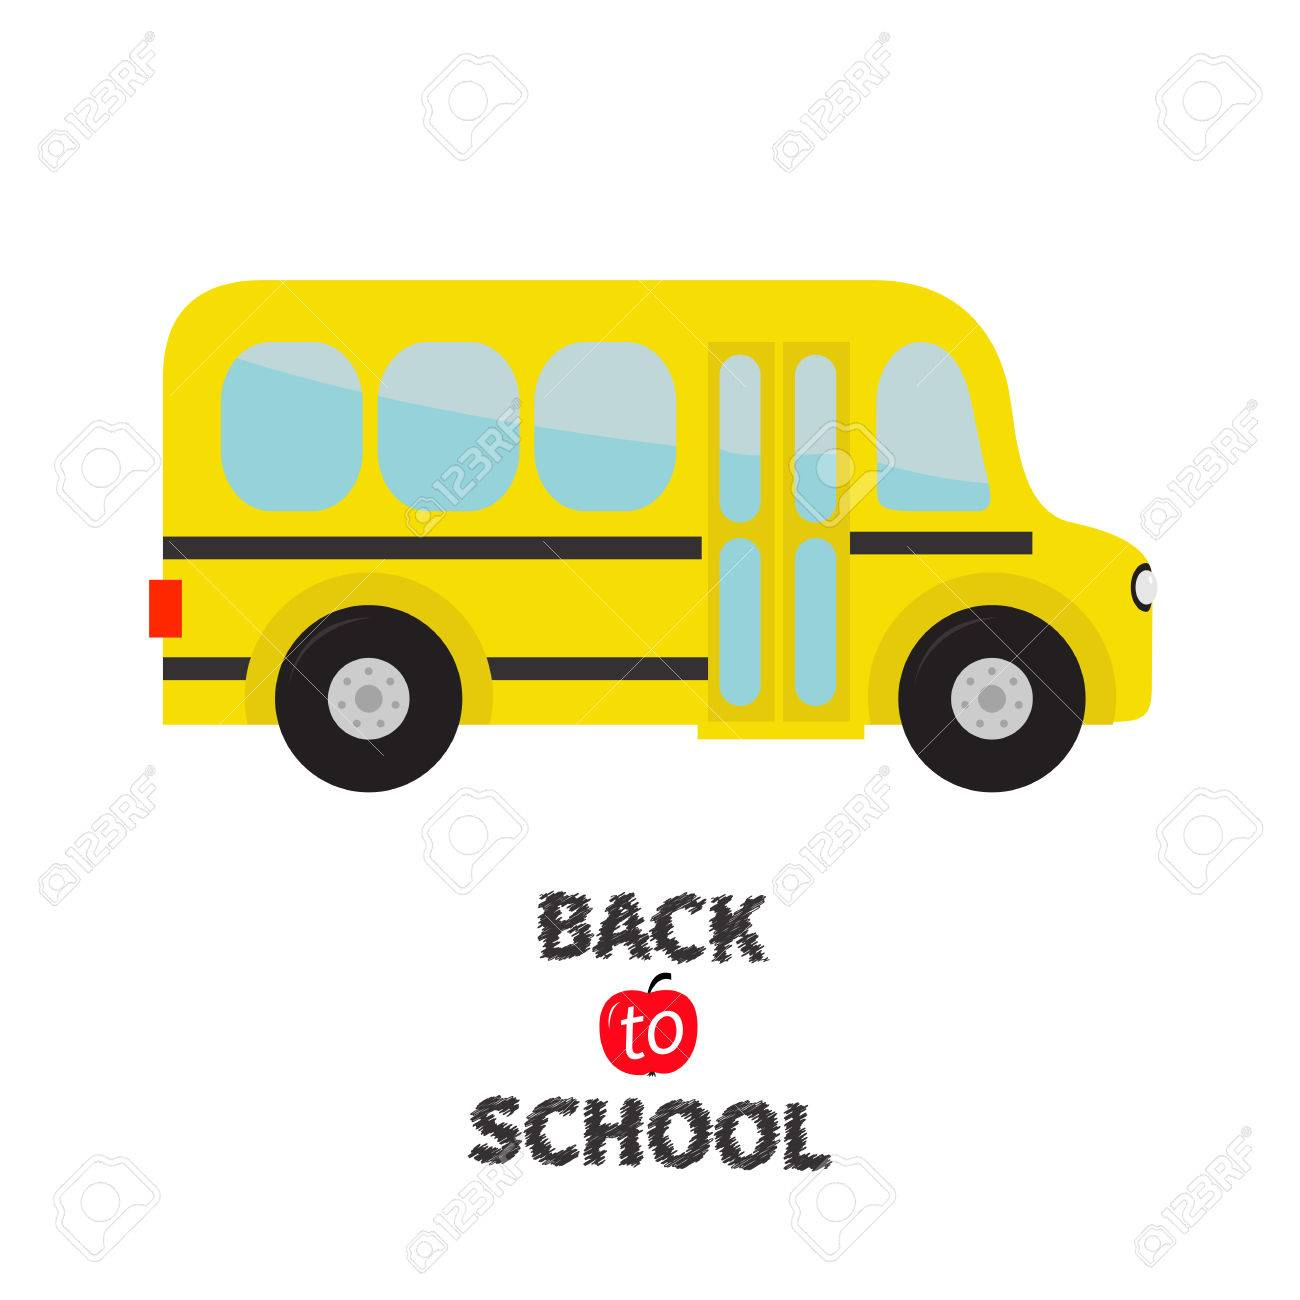 Yellow school bus kids cartoon clipart transportation baby cartoon clipart transportation baby collection side view back to school greeting card flat design isolated white background vector illustration m4hsunfo